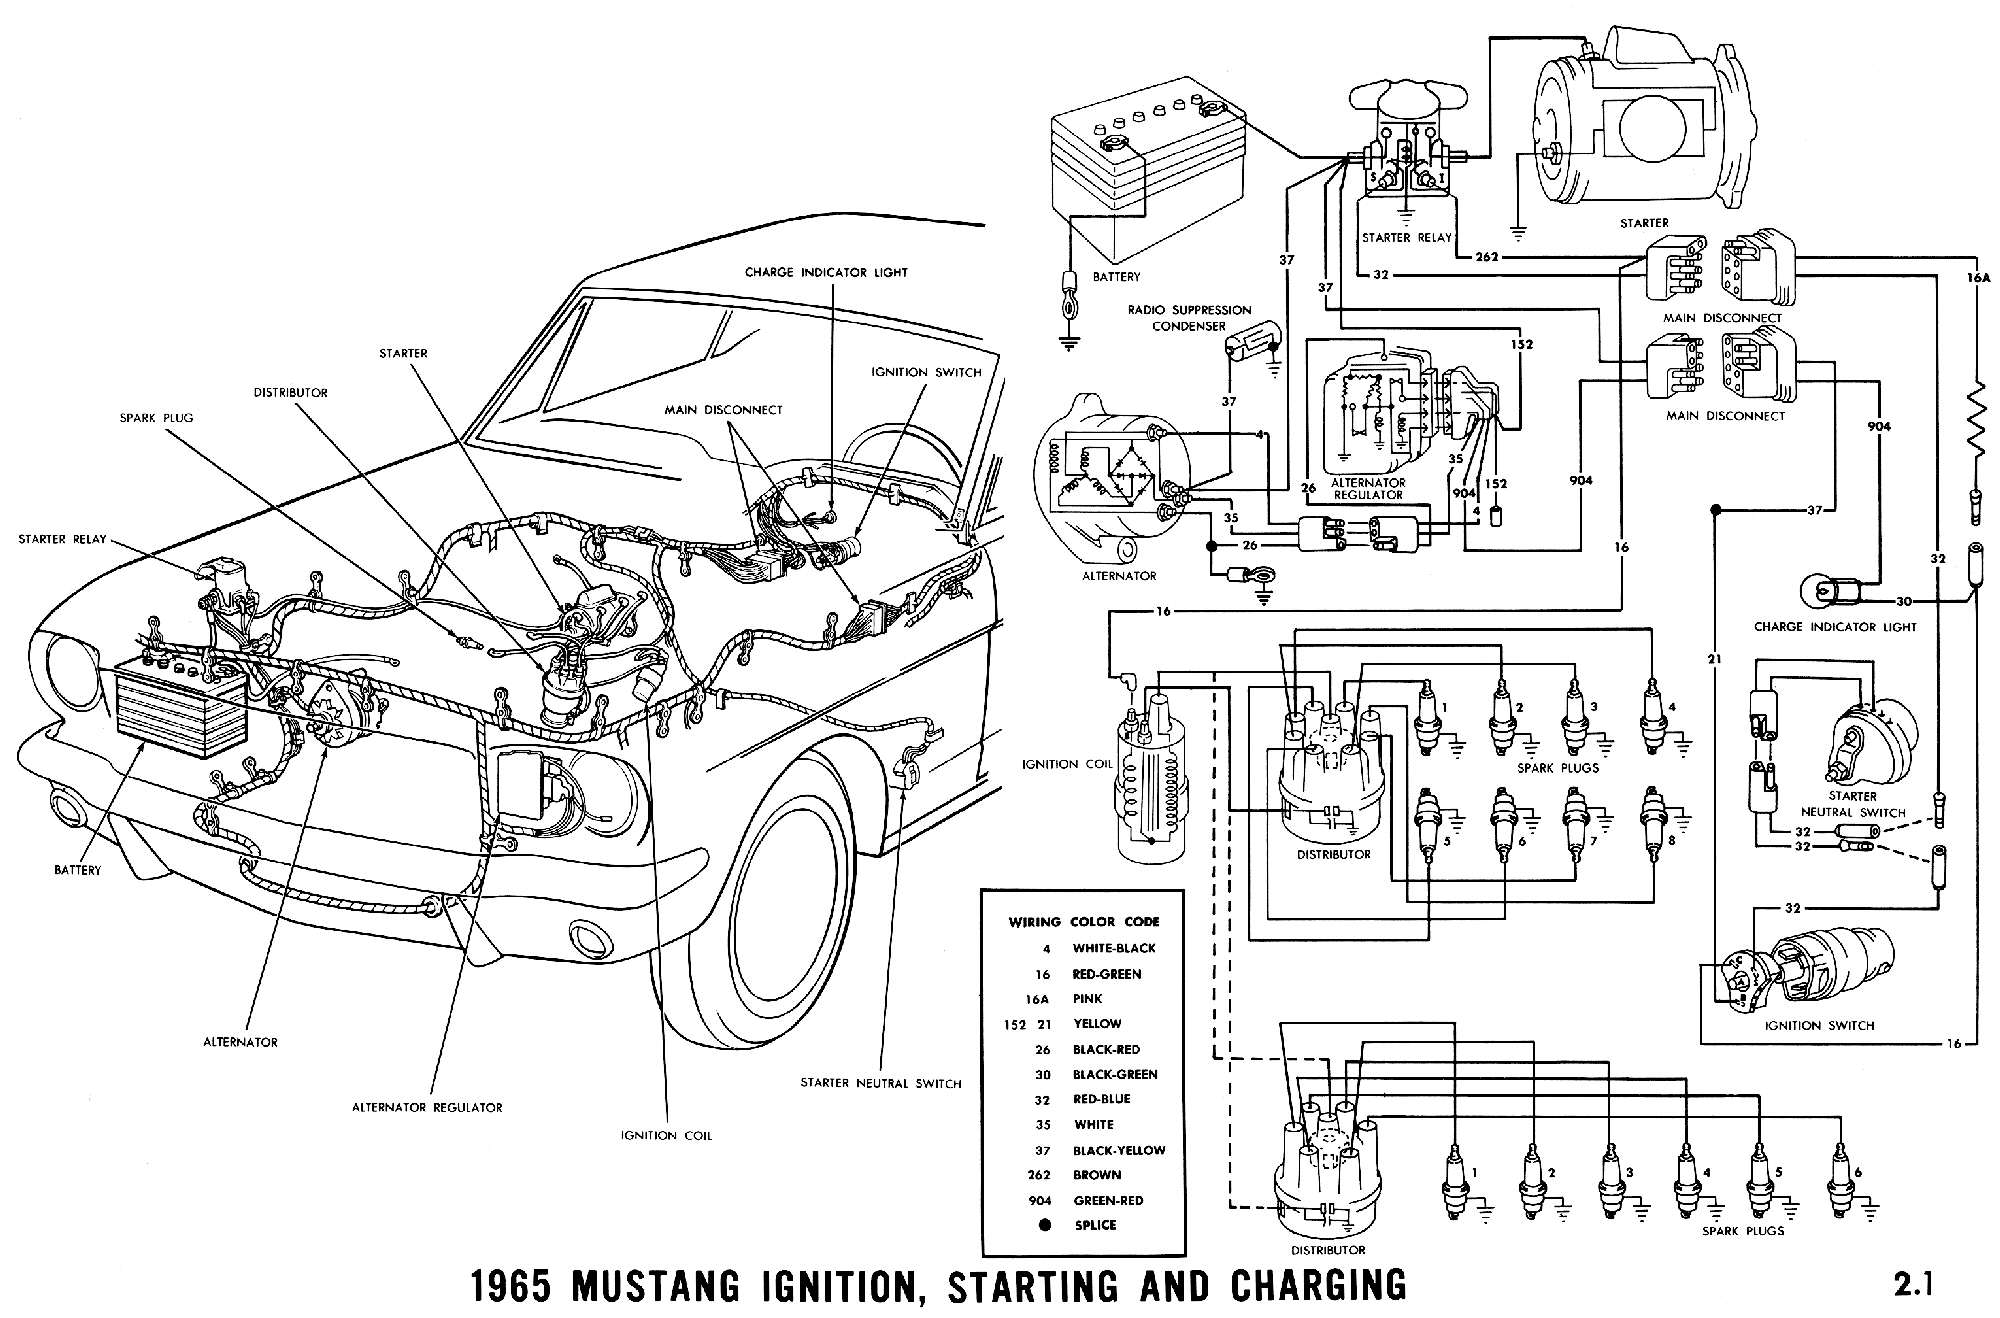 1965 mustang wiring diagrams average joe restoration rh averagejoerestoration com 1966 mustang engine wiring diagram 1970 mustang engine wiring diagram